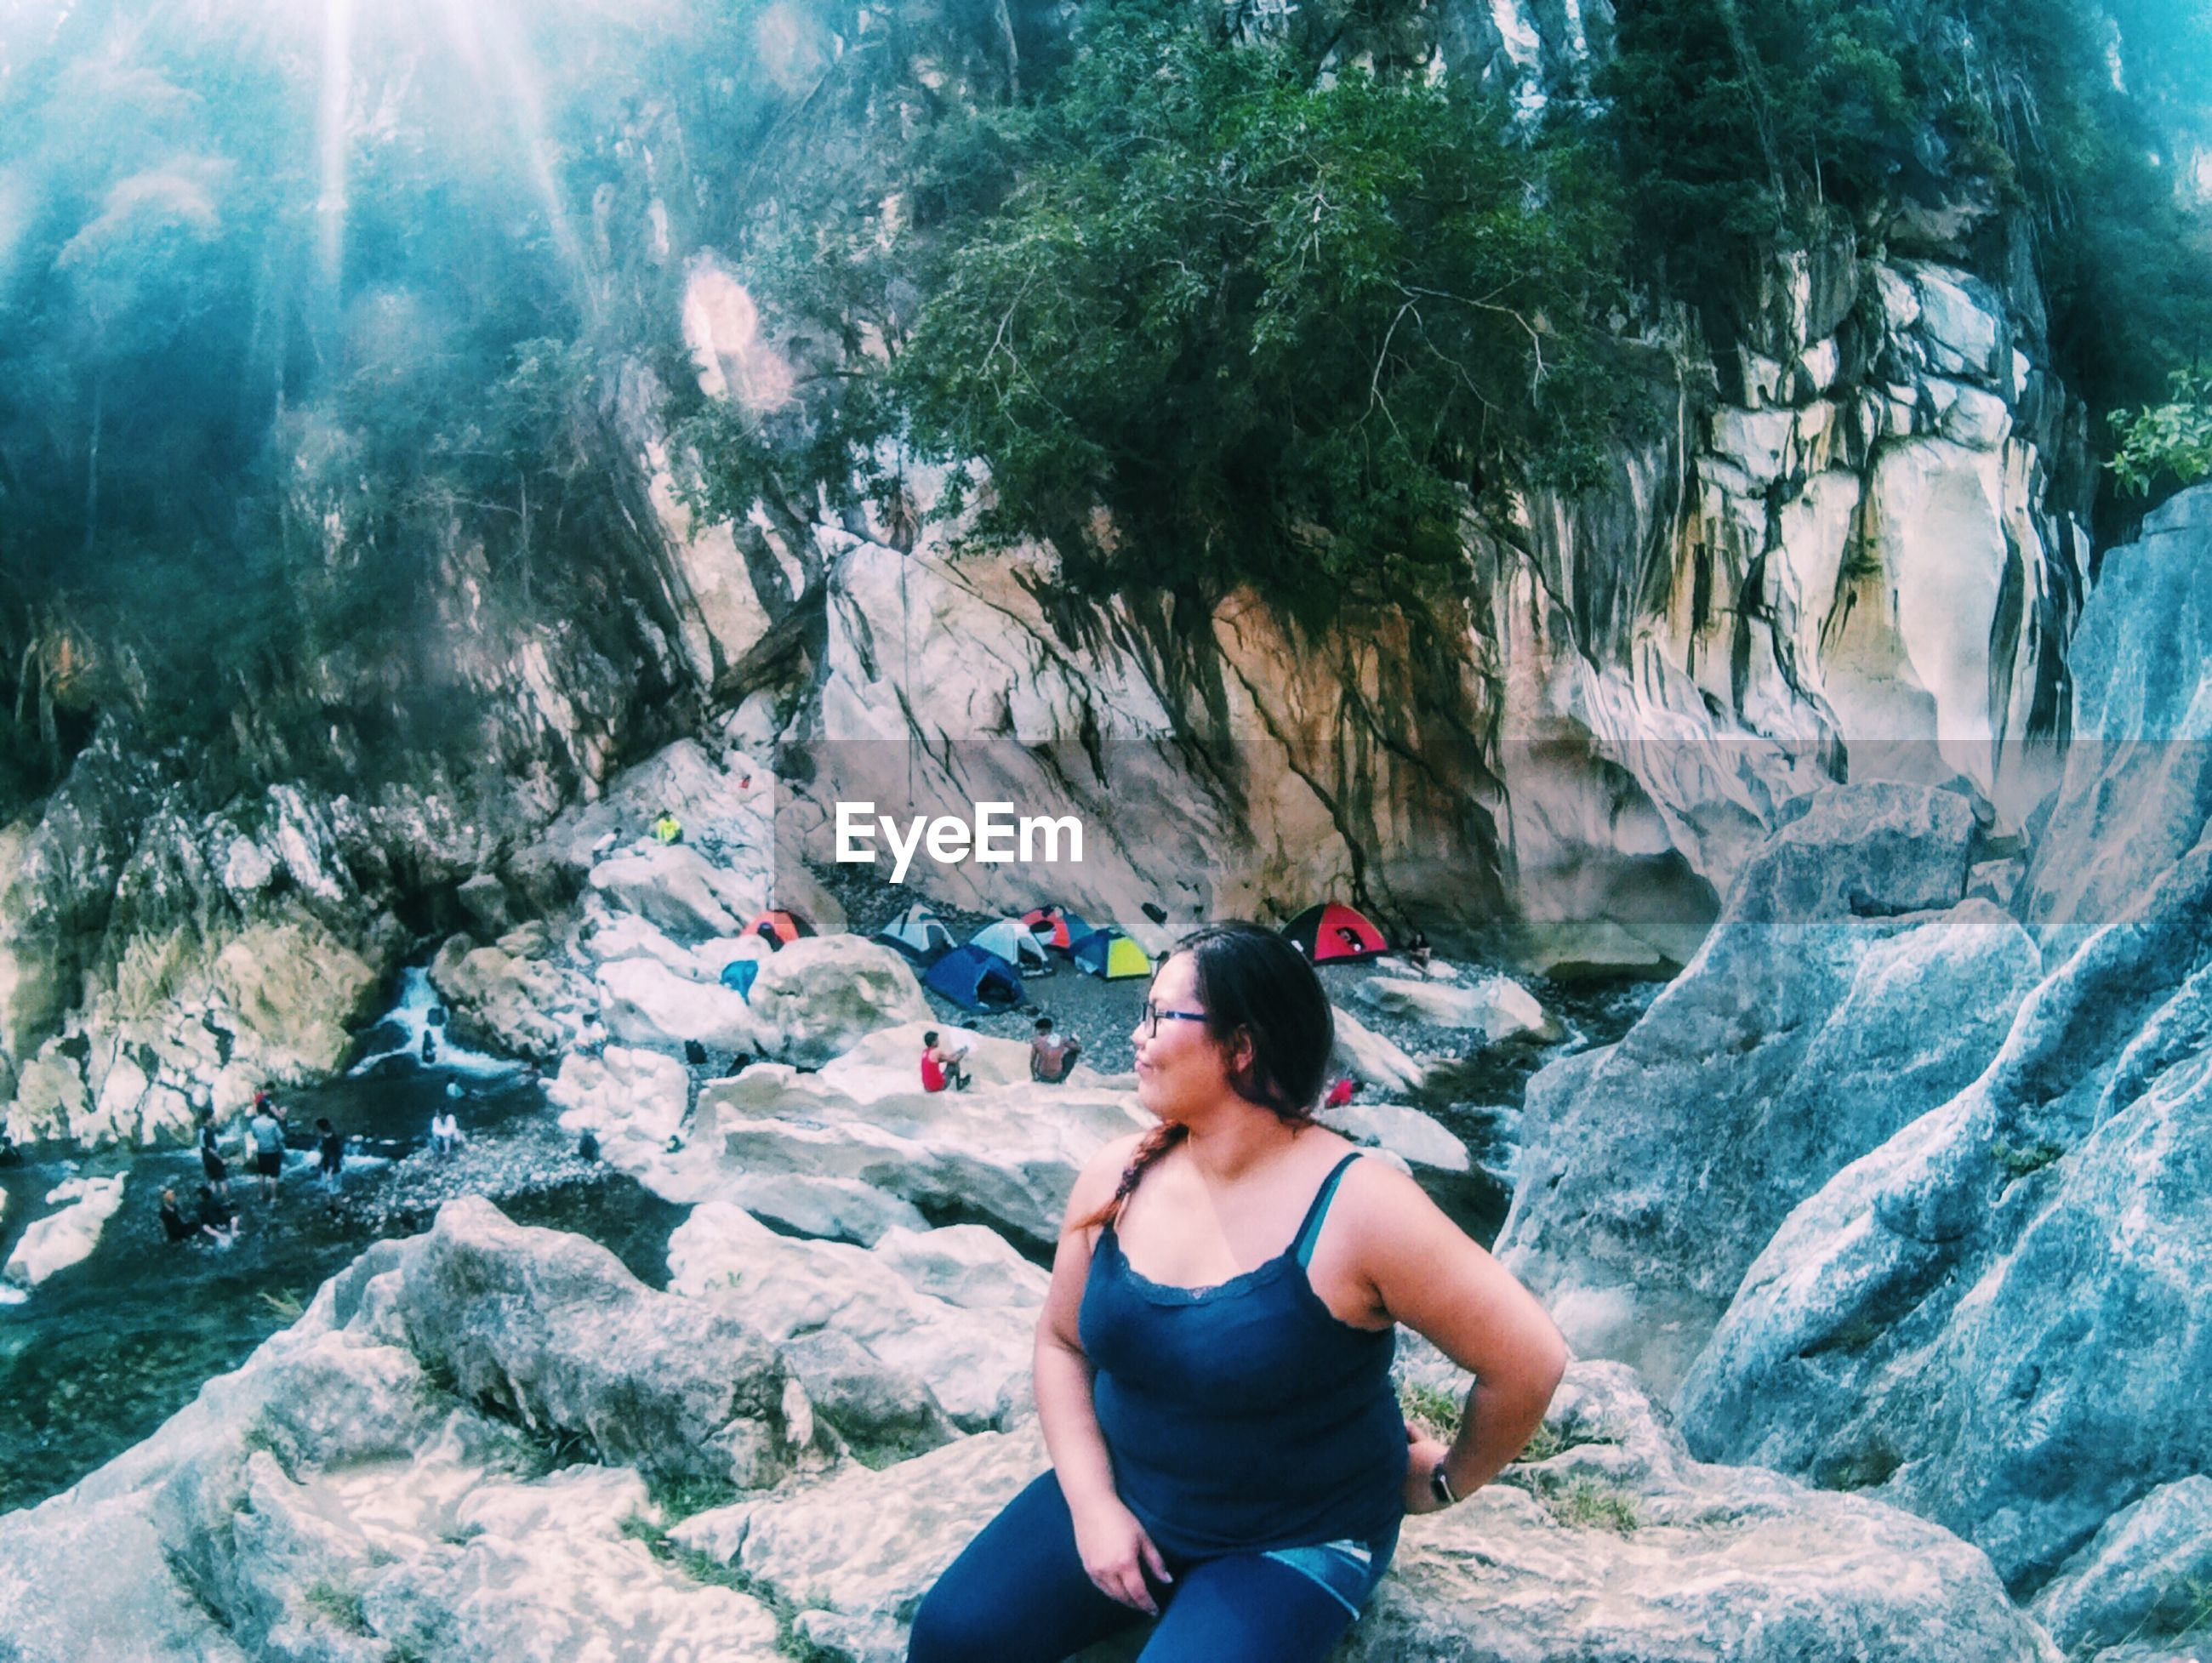 Woman sitting on rocks by river